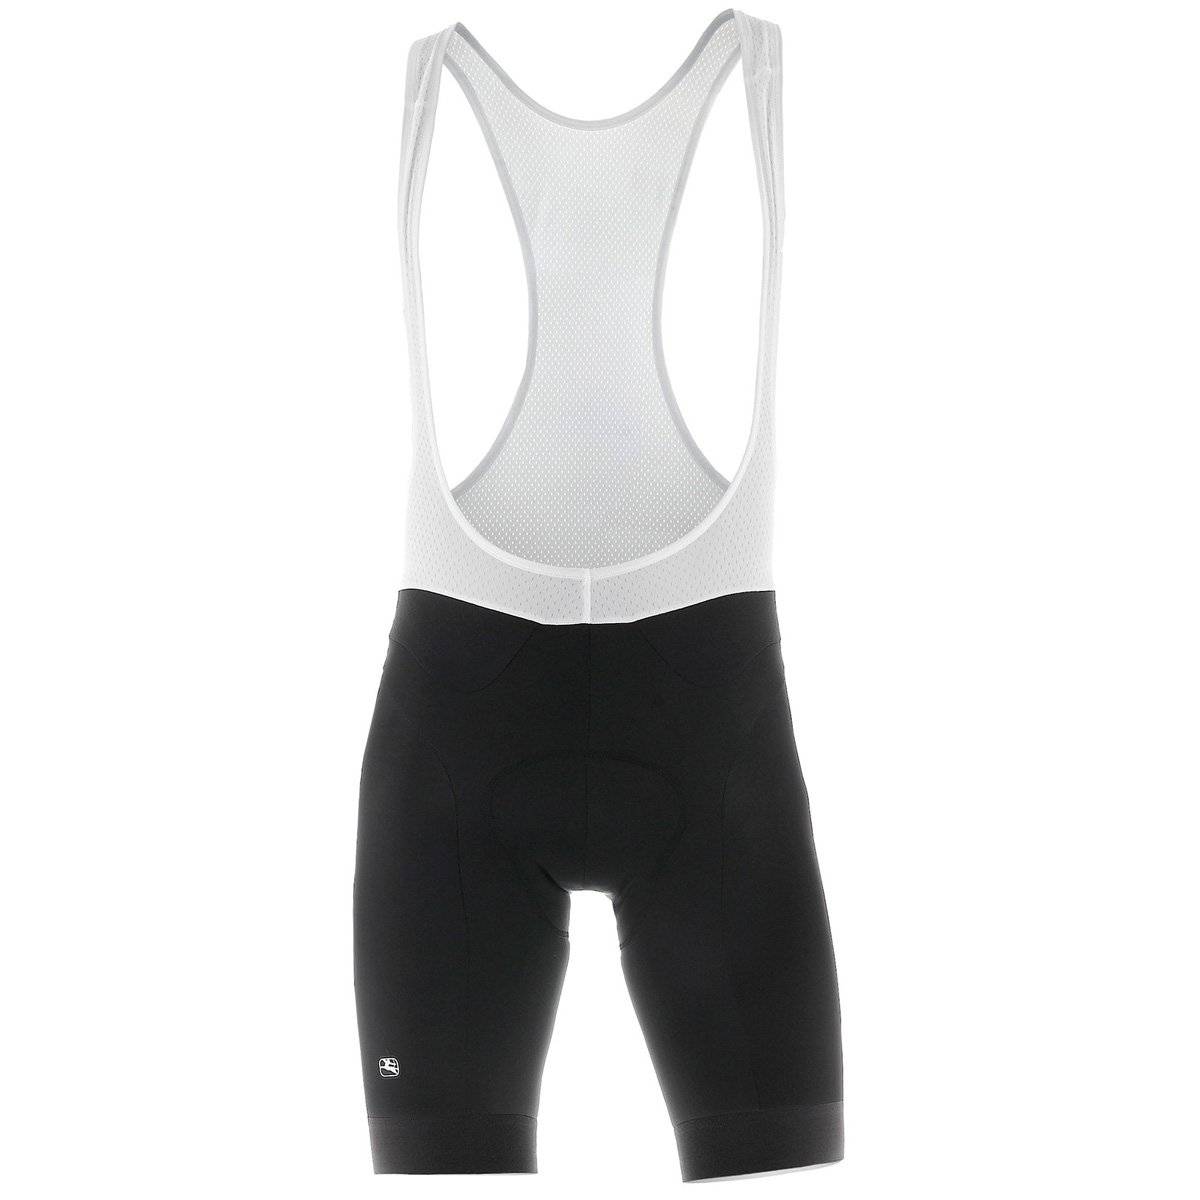 Giordana Silverline Mens Bib Shorts Cycling Golf Wiring Schematicit Shortsi Put The Positive Battery Cable On Compression Sports Outdoors